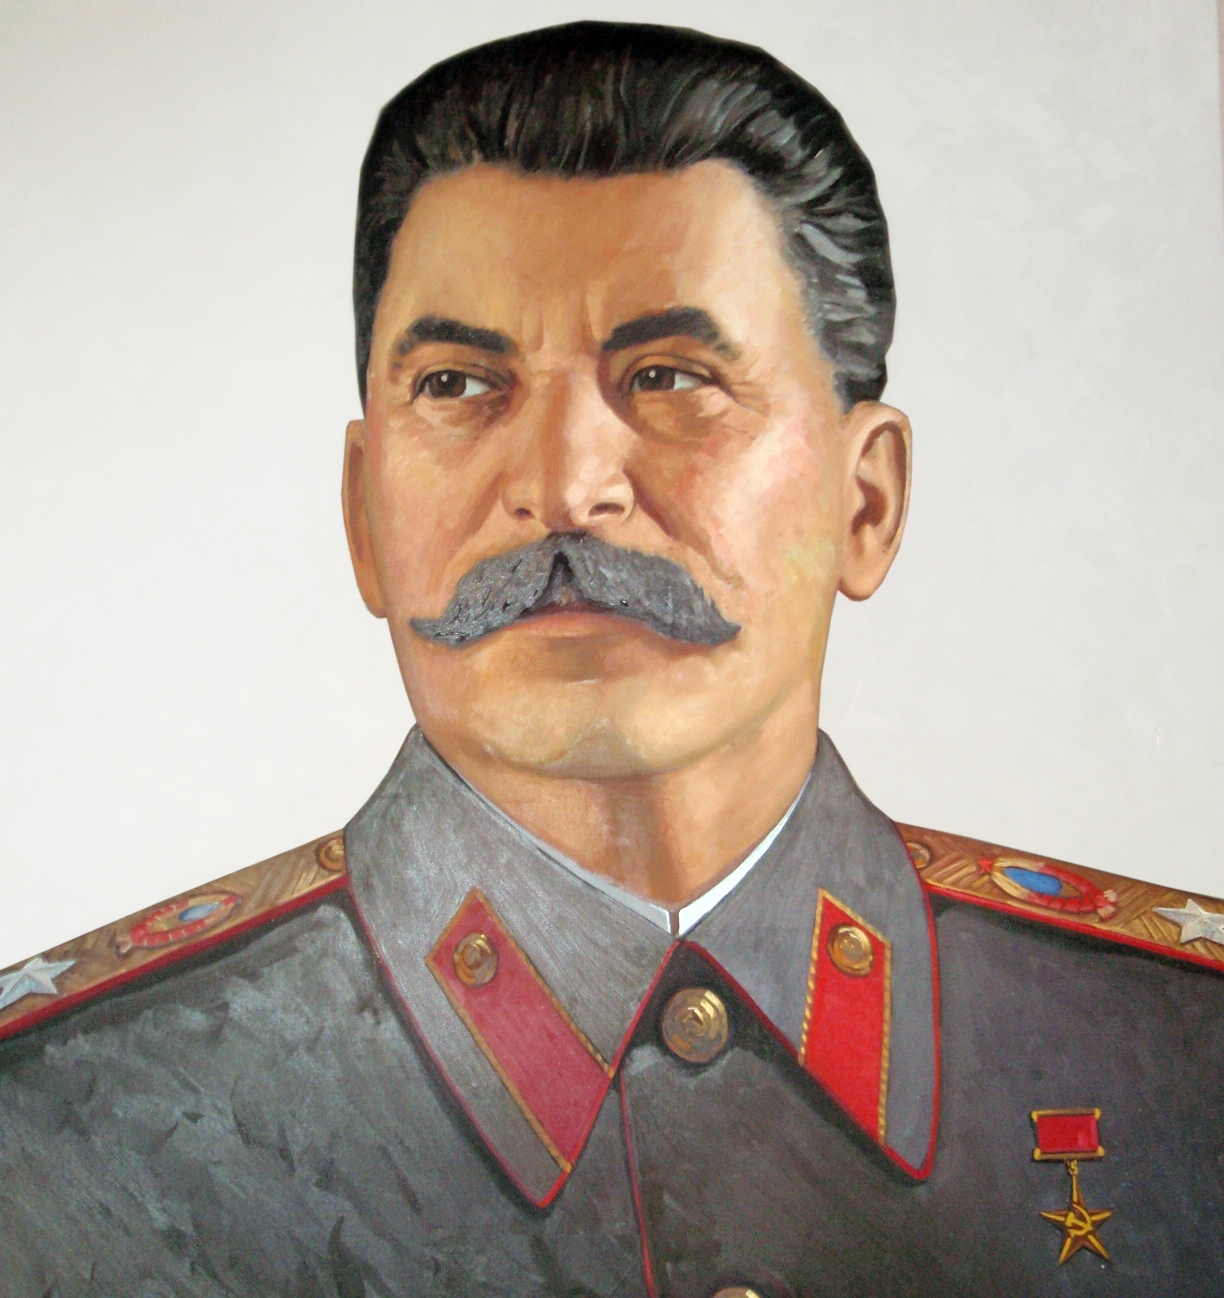 Cold hearted Joseph Stalin